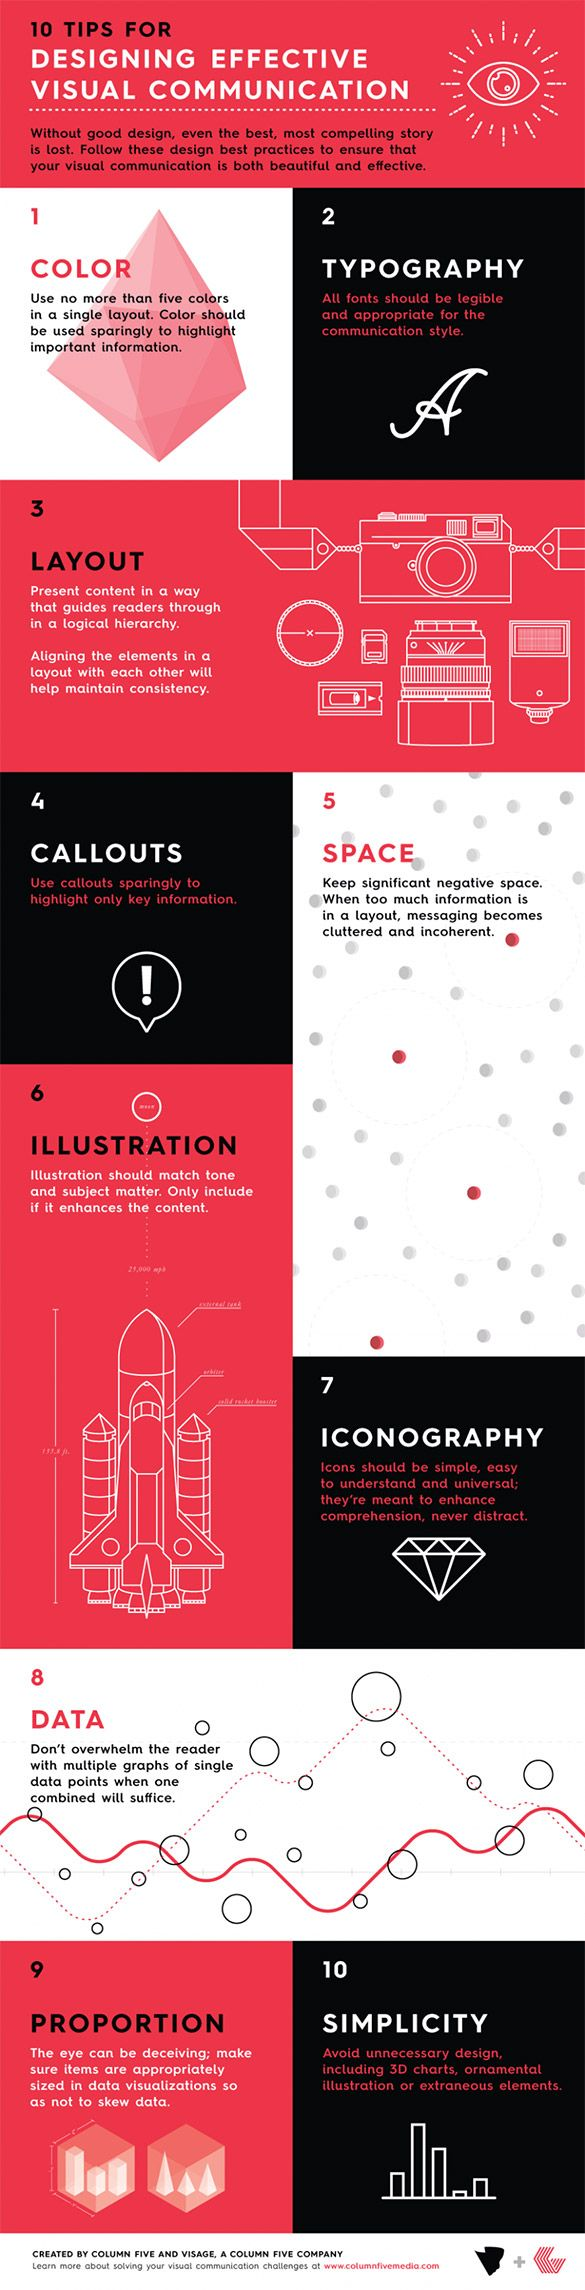 #design 10 conseils pour une bonne communication visuelle - 10 tips for designing effective visual communication